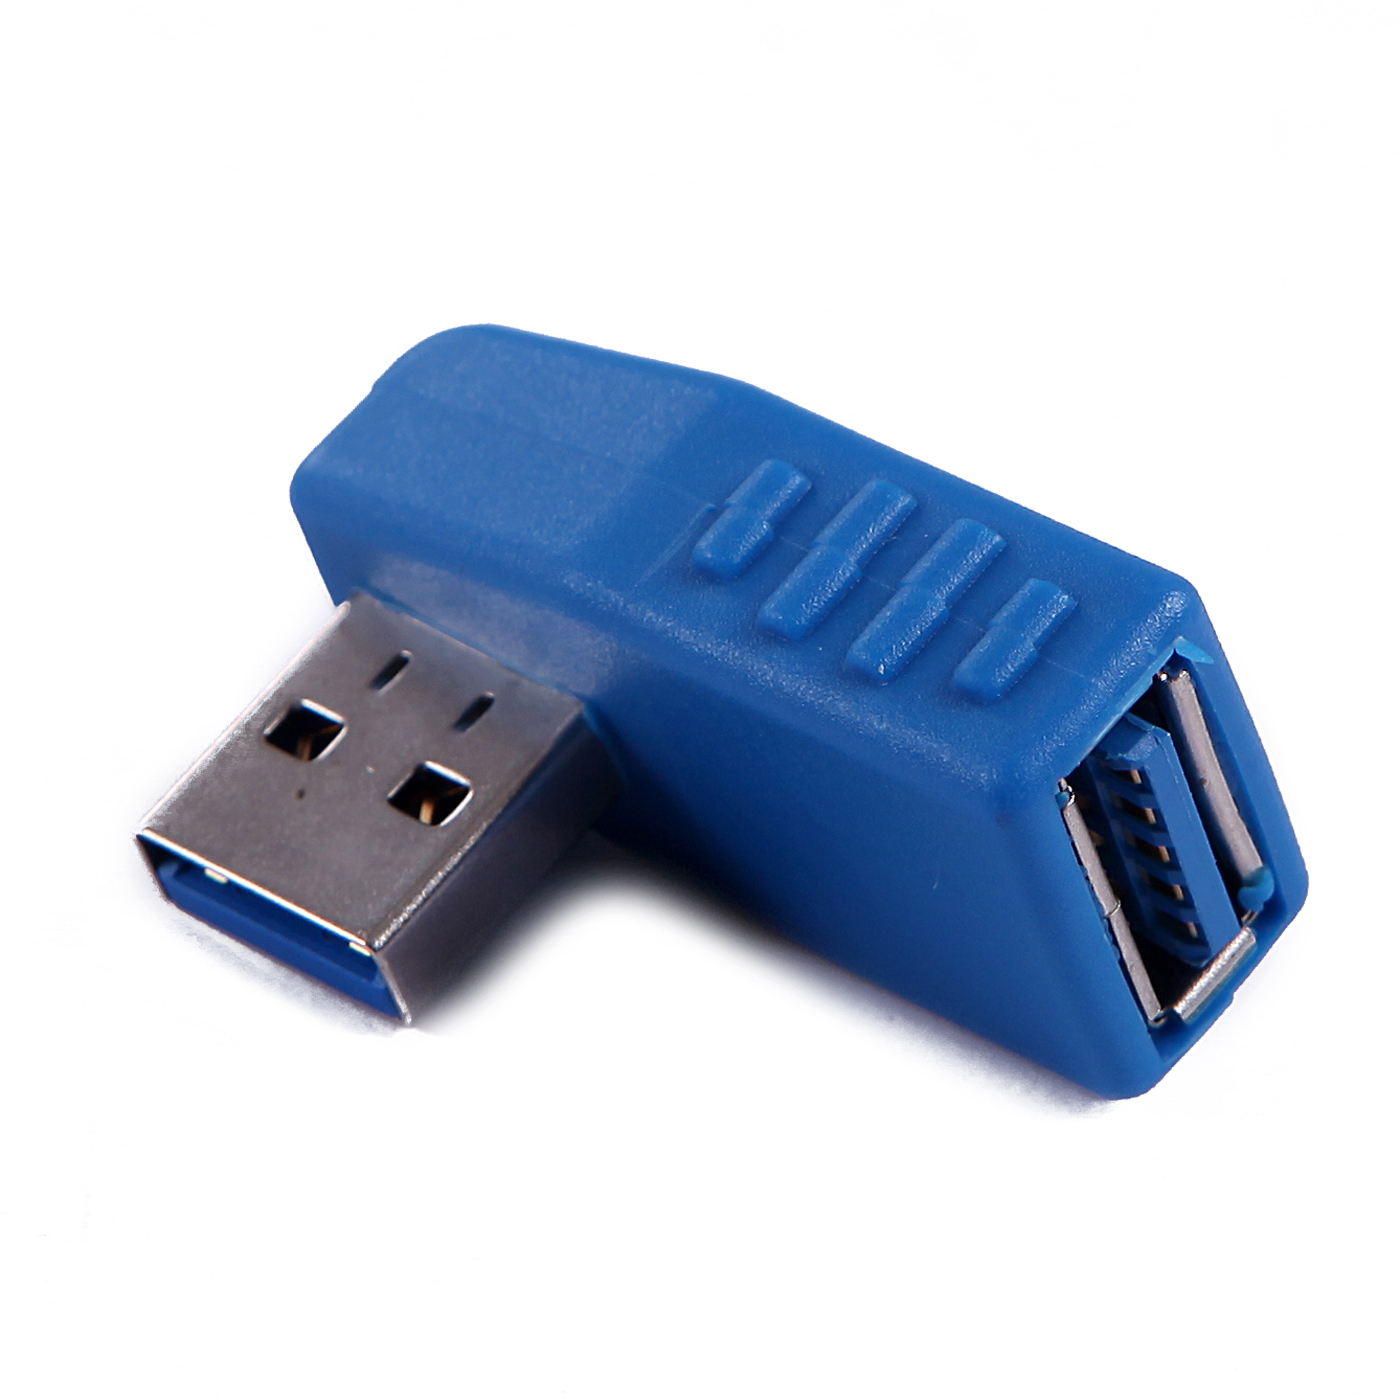 HDE Right Angle USB 3.0 Male to Female Adapter Vertical USB Coupler Connector for PCs Macs and other USB Host Devices (Single)